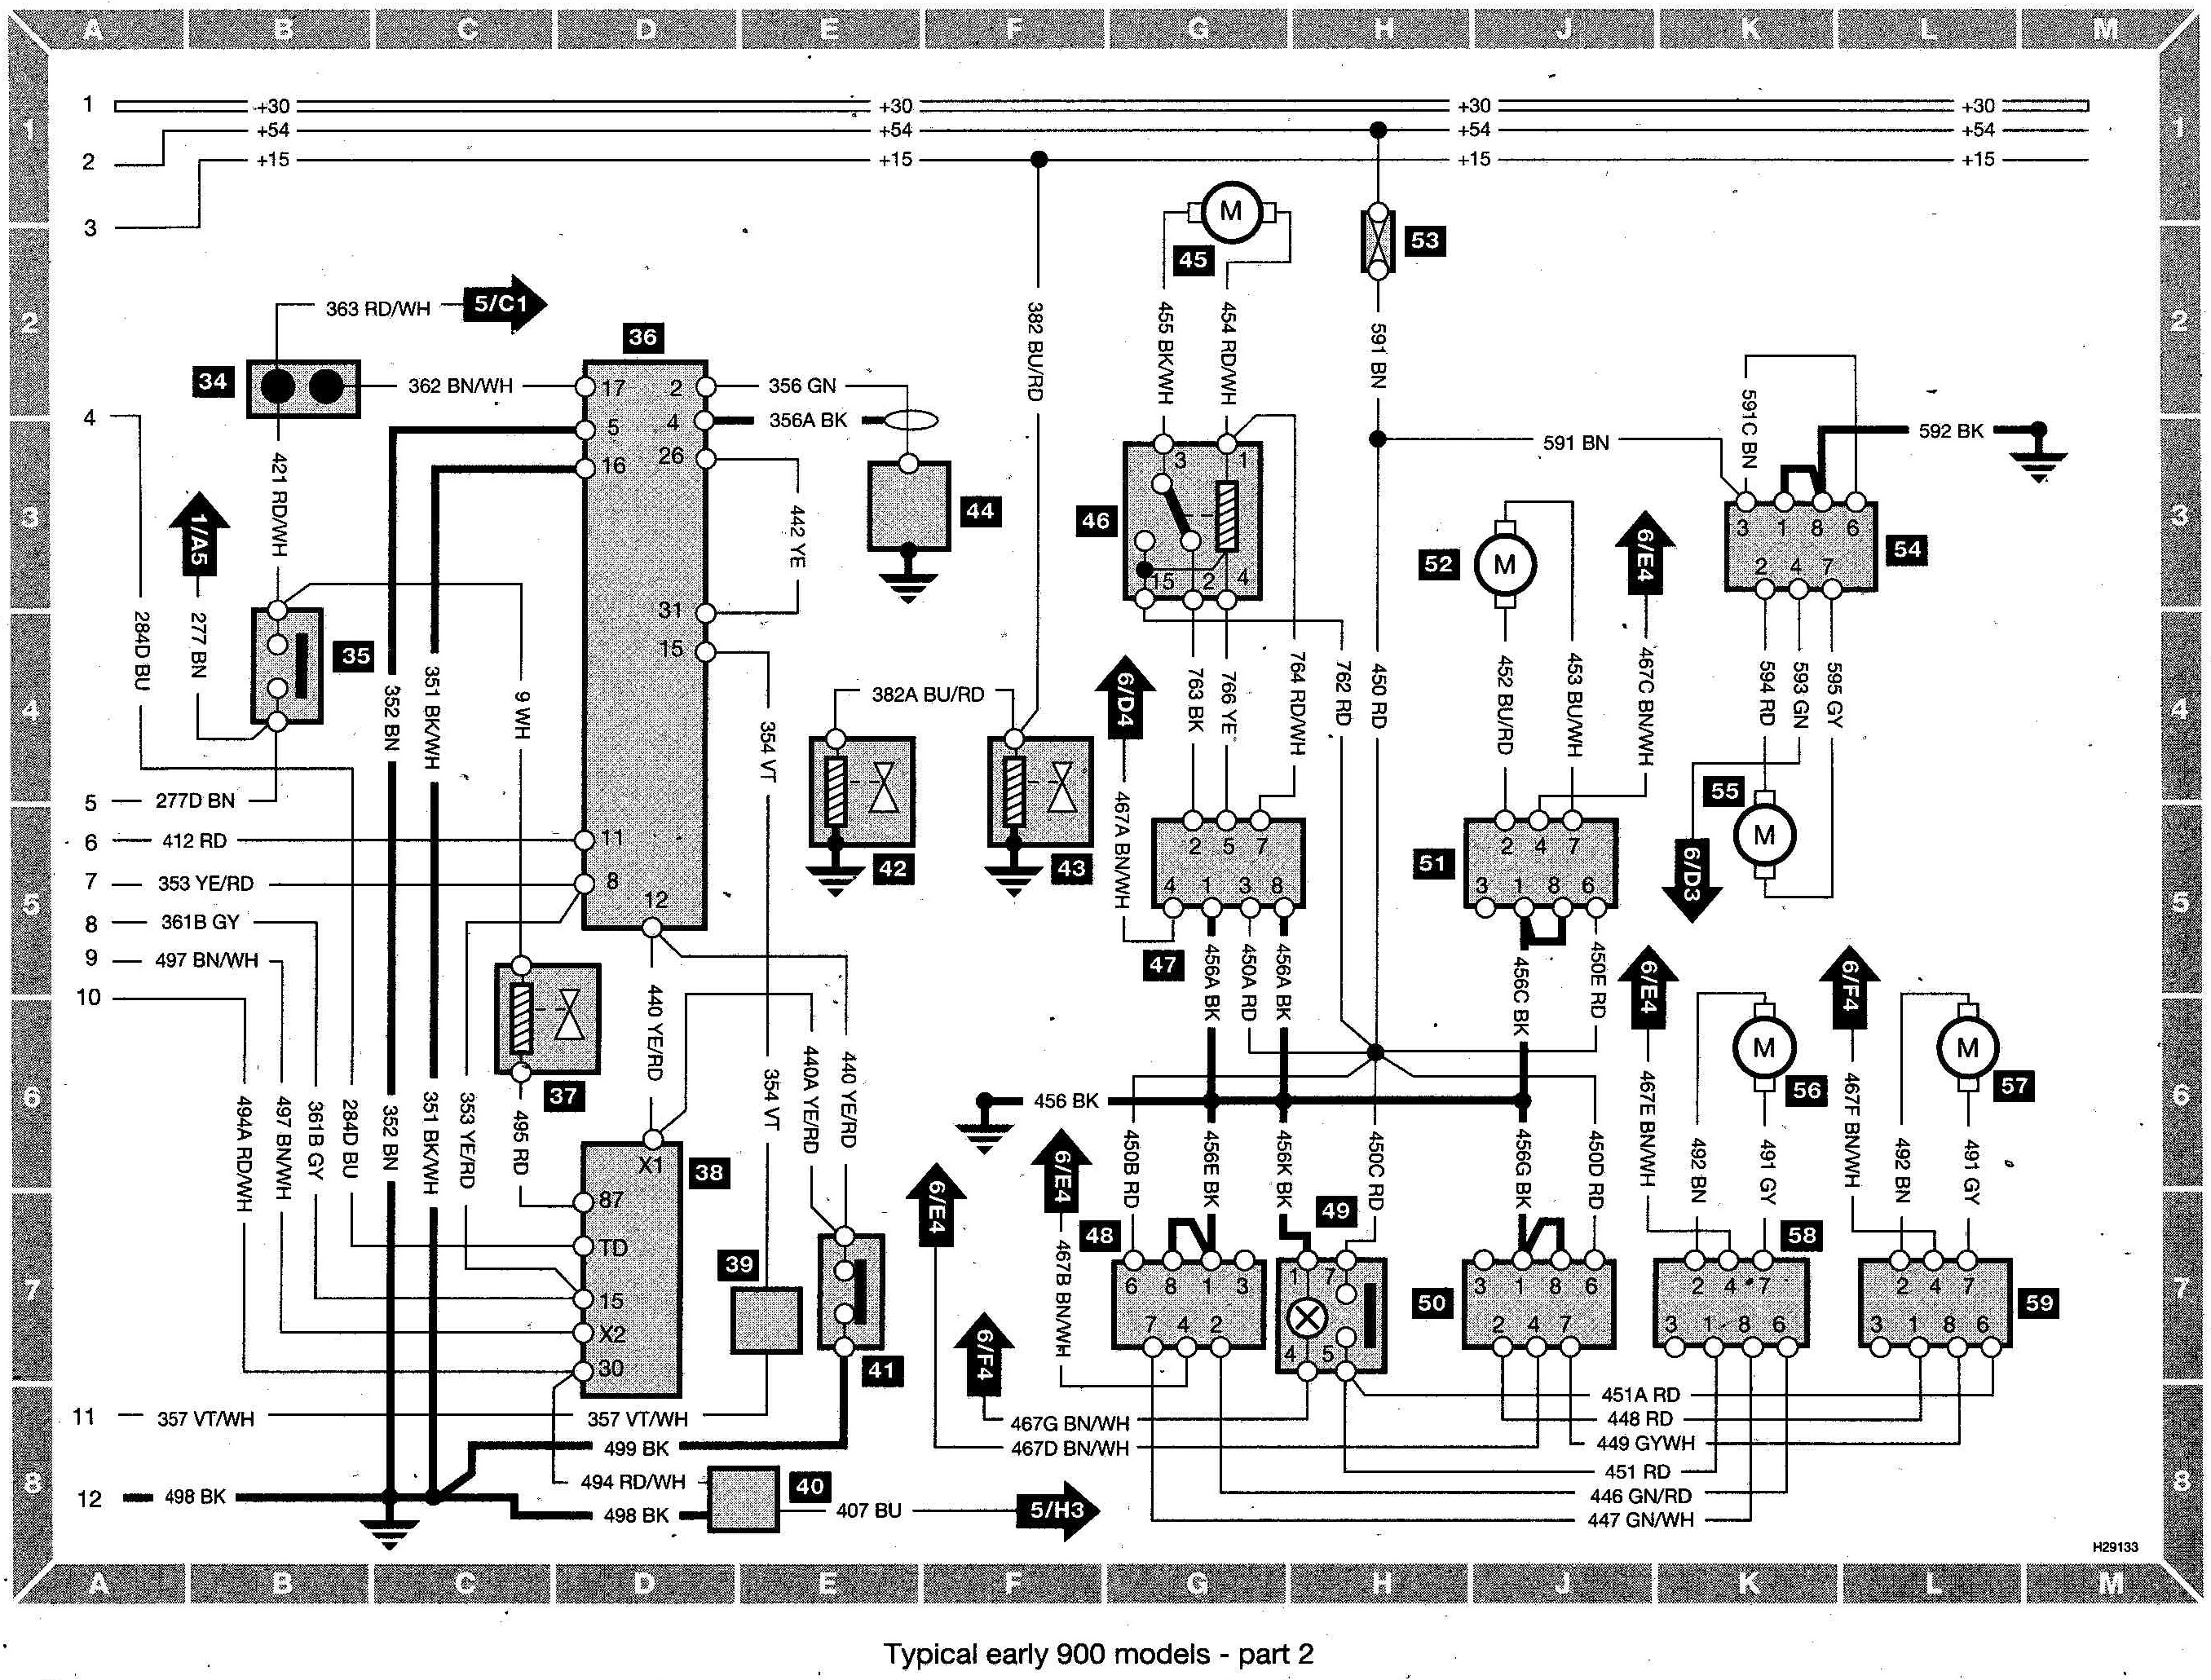 [SCHEMATICS_48DE]  DIAGRAM] 2004 Saab 9 5 Wiring Diagram FULL Version HD Quality Wiring Diagram  - FUSPORN5990.ILCASTAGNETOAMATRICE.IT | 2004 Saab Engine Diagram |  | fusporn5990.ilcastagnetoamatrice.it